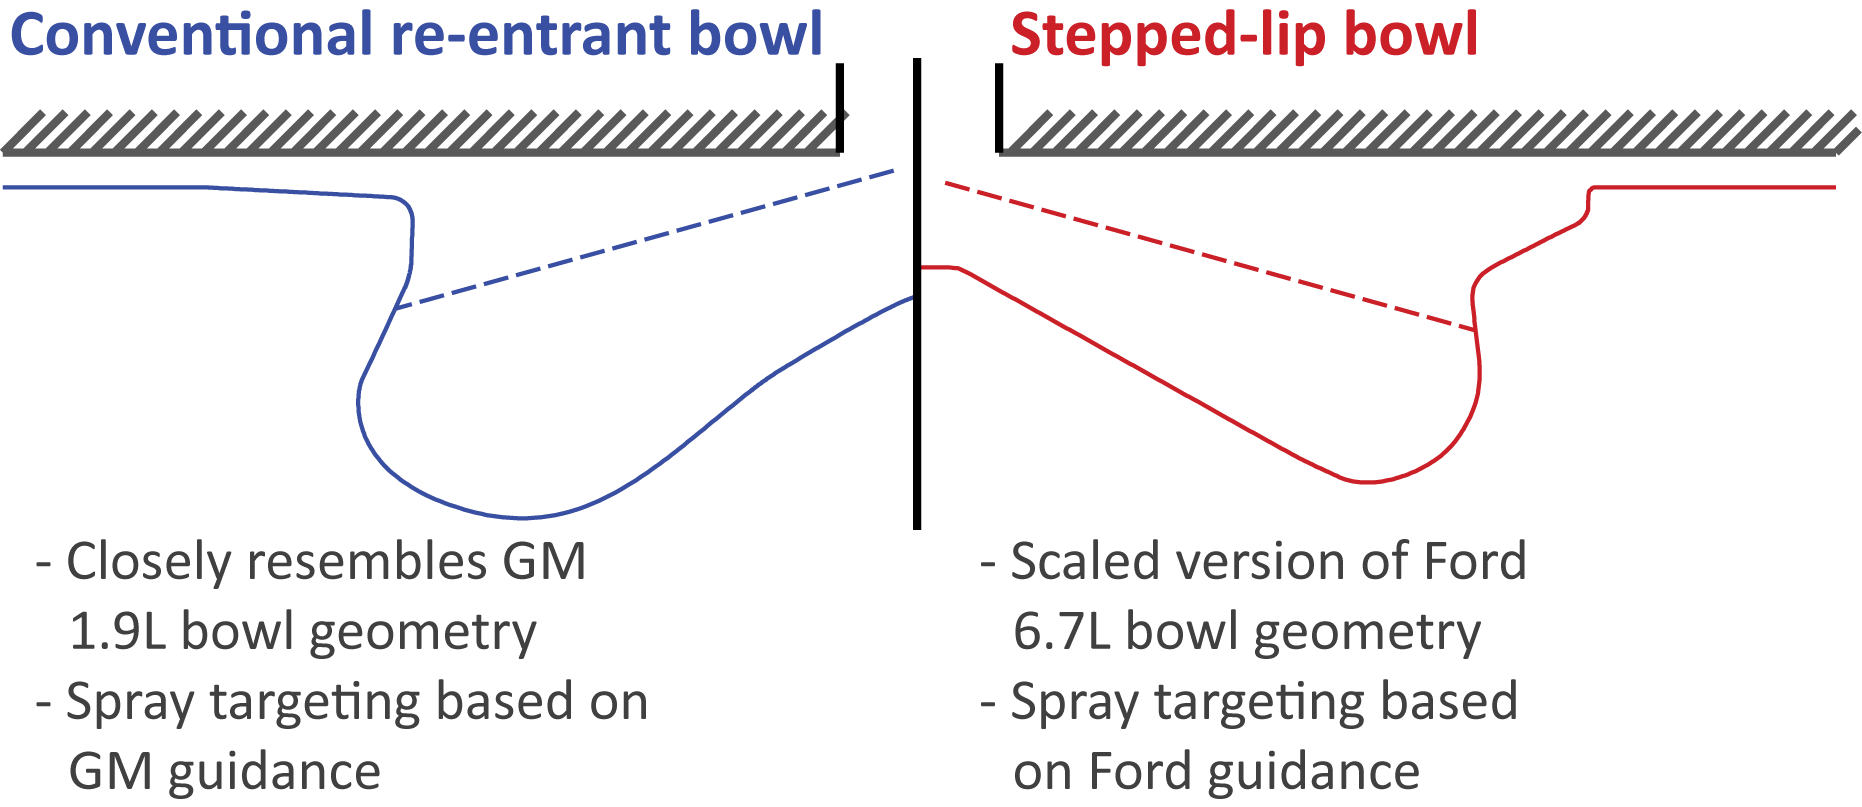 Comparison of conventional, re-entrant piston bowl with stepped-lip bowl.